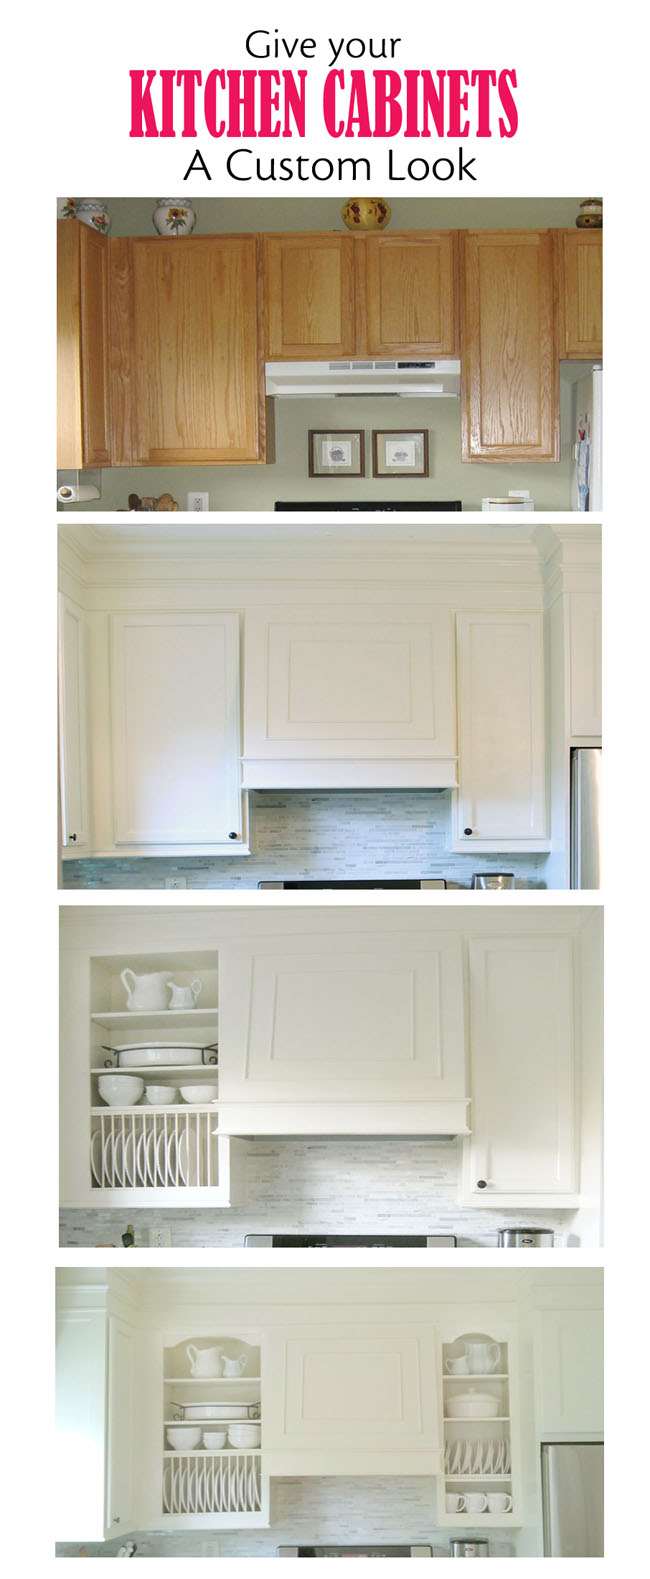 A 1 Custom Cabinets Remodelando La Casa Give Your Kitchen Cabinets A Custom Look